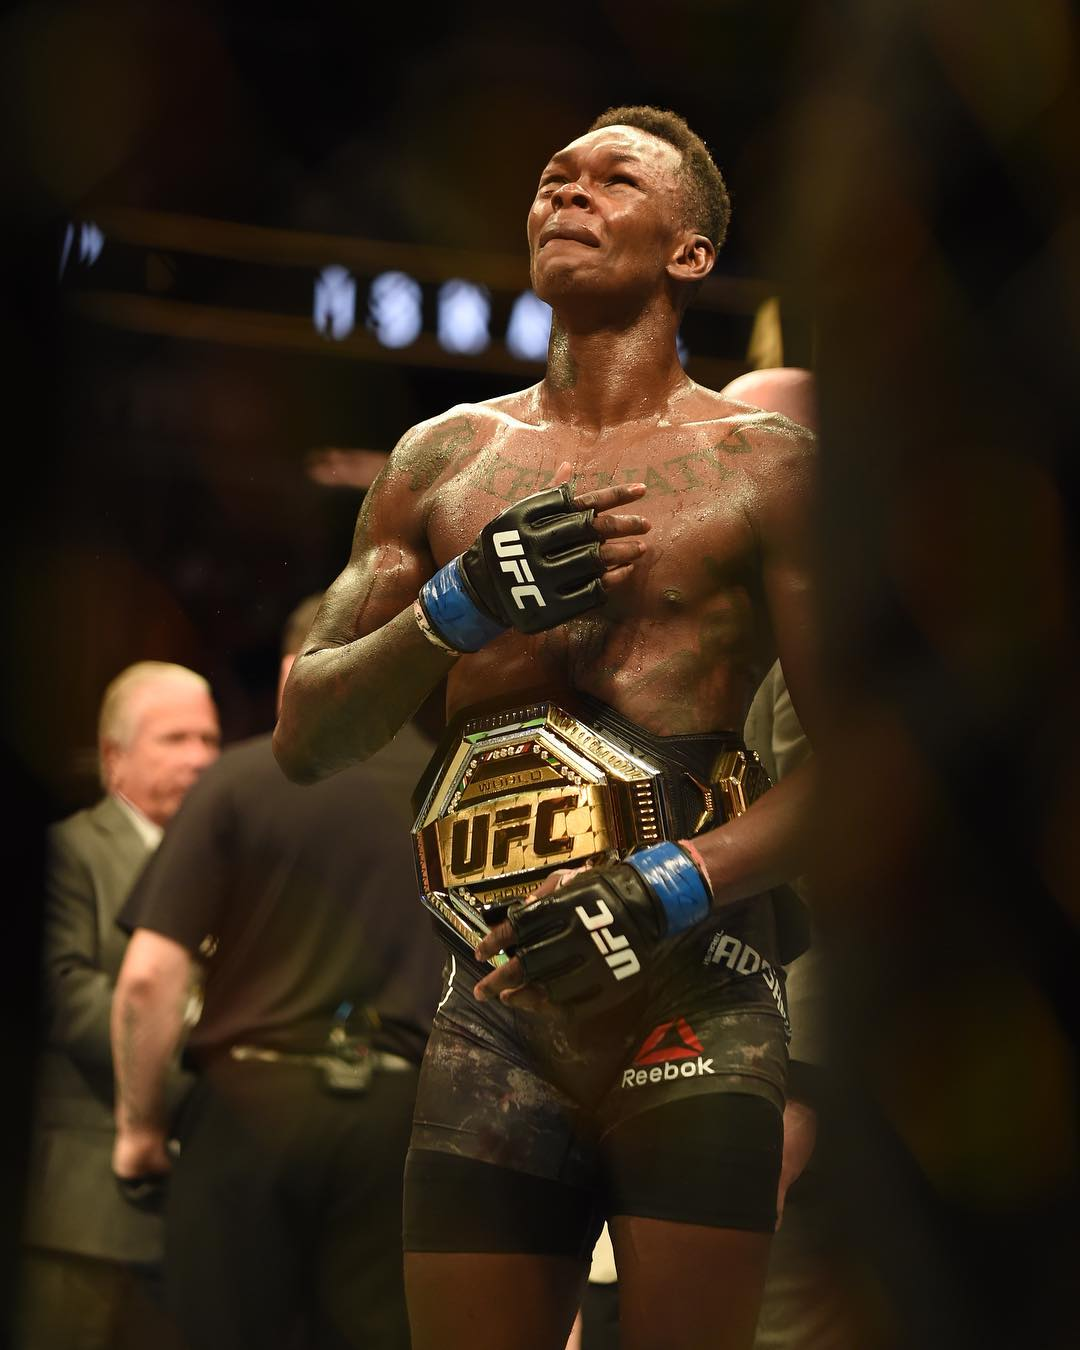 Israel Adesanya wins Interim UFC Middleweight Championship Belt